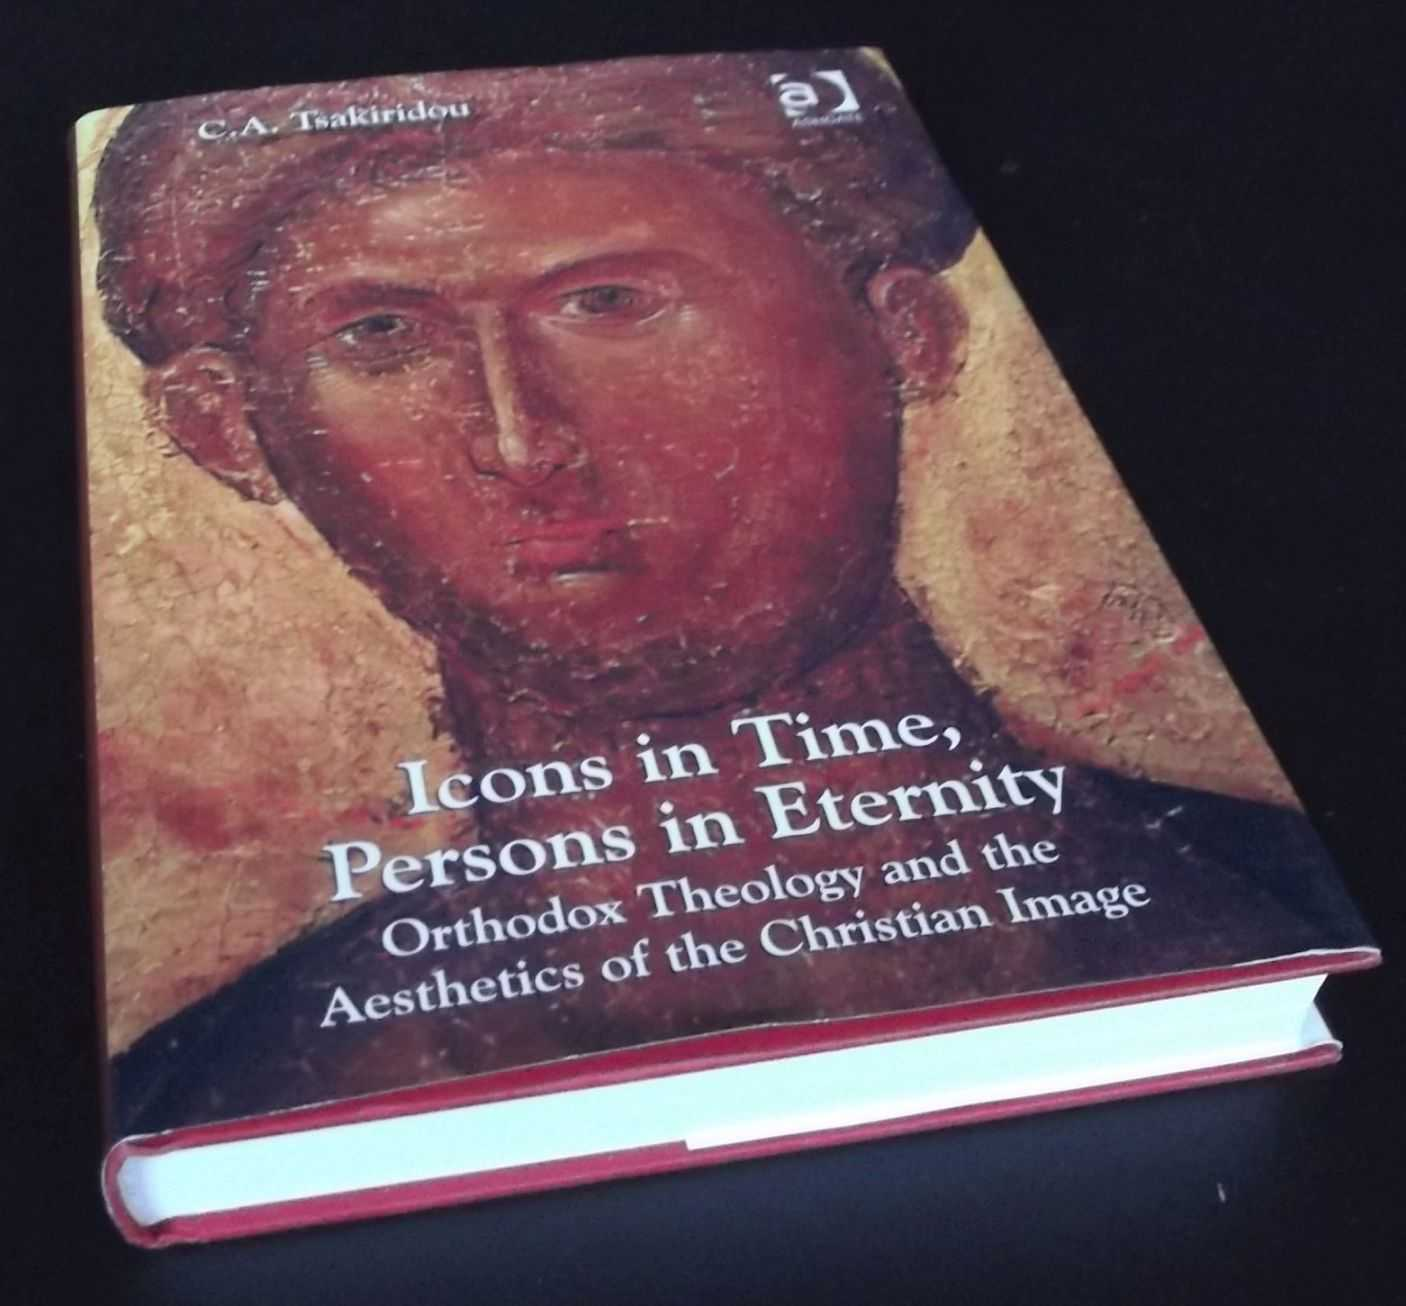 C.A. TSAKIRIDOU - Icons in Time, Persons in Eternity: Orthodox Theology and the Aesthetics of the Christian Image